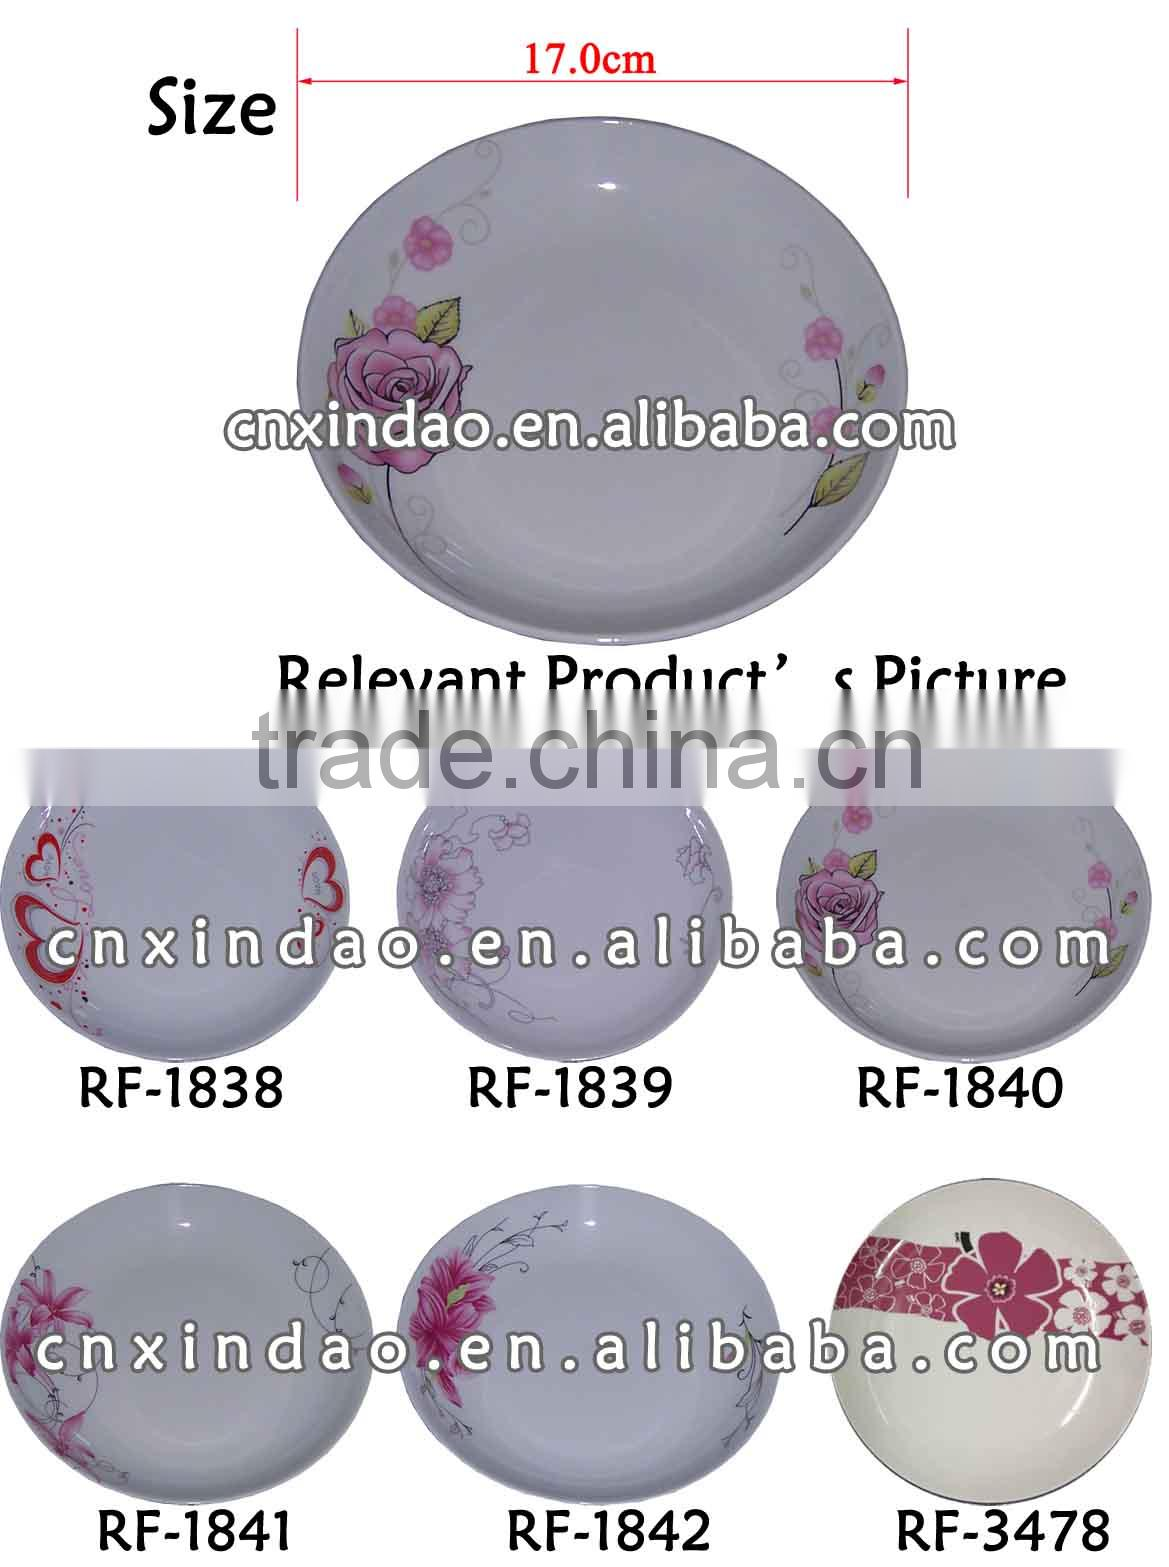 Flower Designed Elegant Popular Porcelain Promotion Plate for Personalized Cake Plate